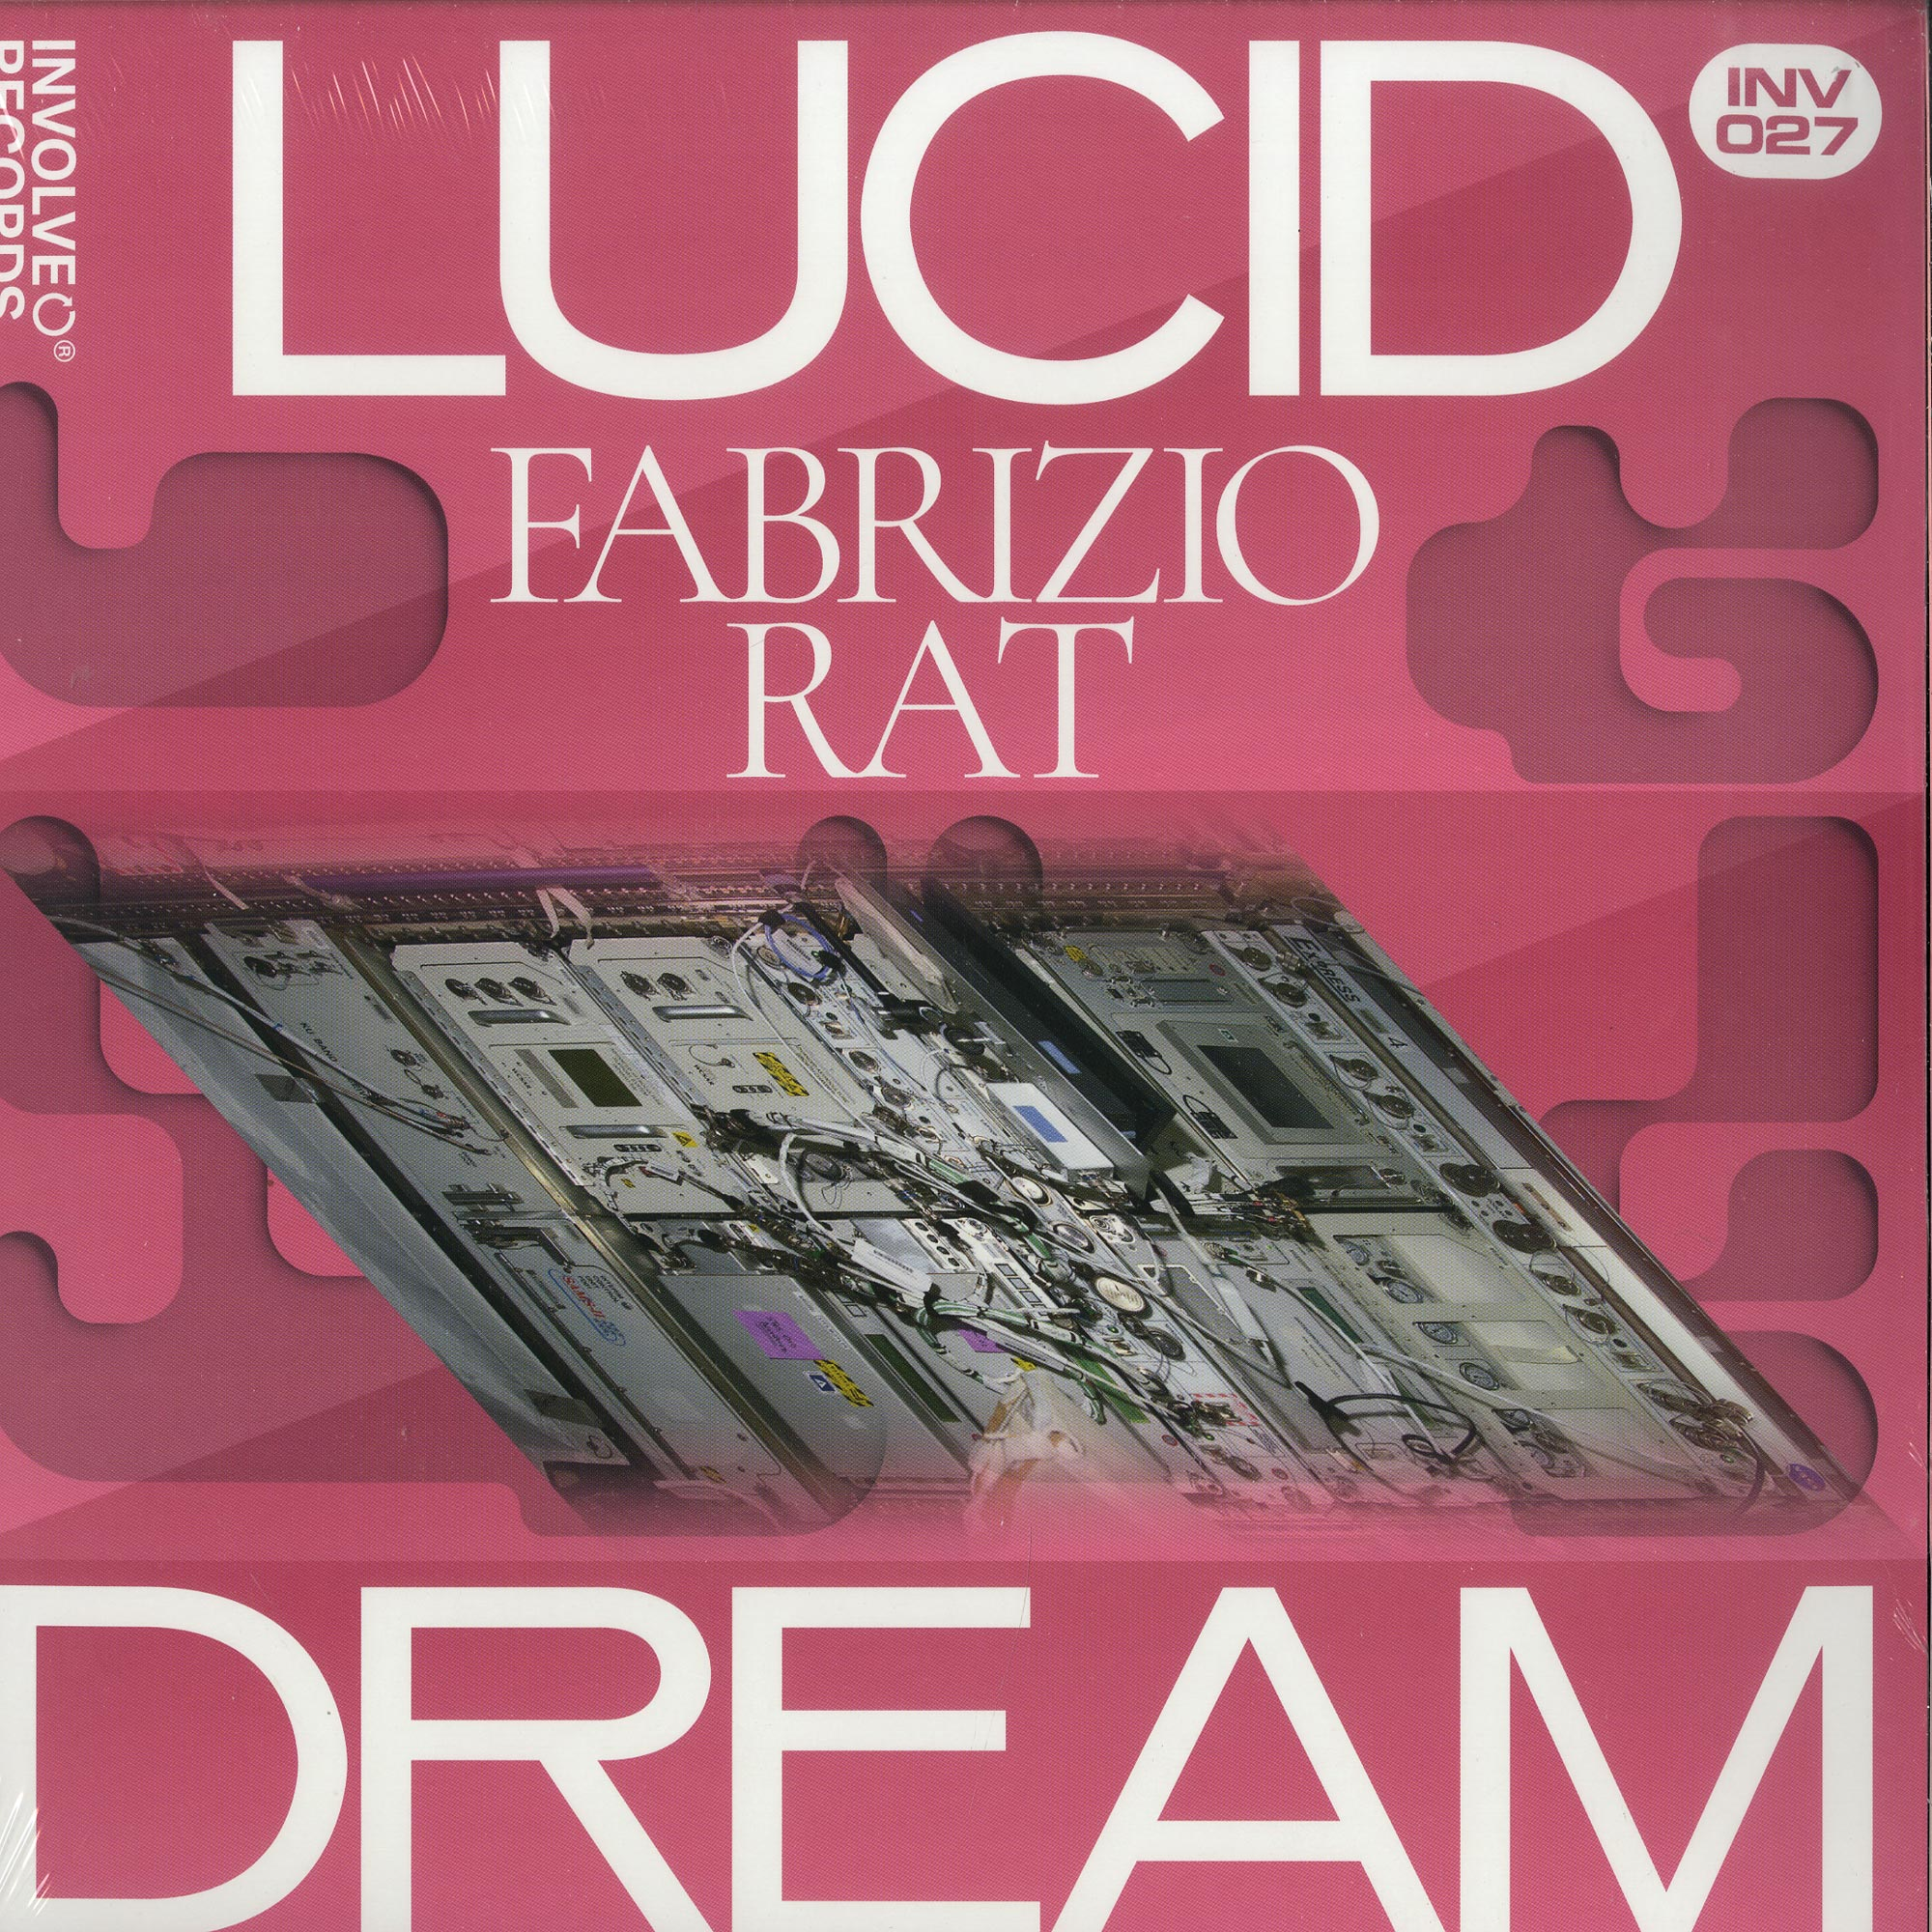 Fabrizio Rat - LUCID DREAM EP